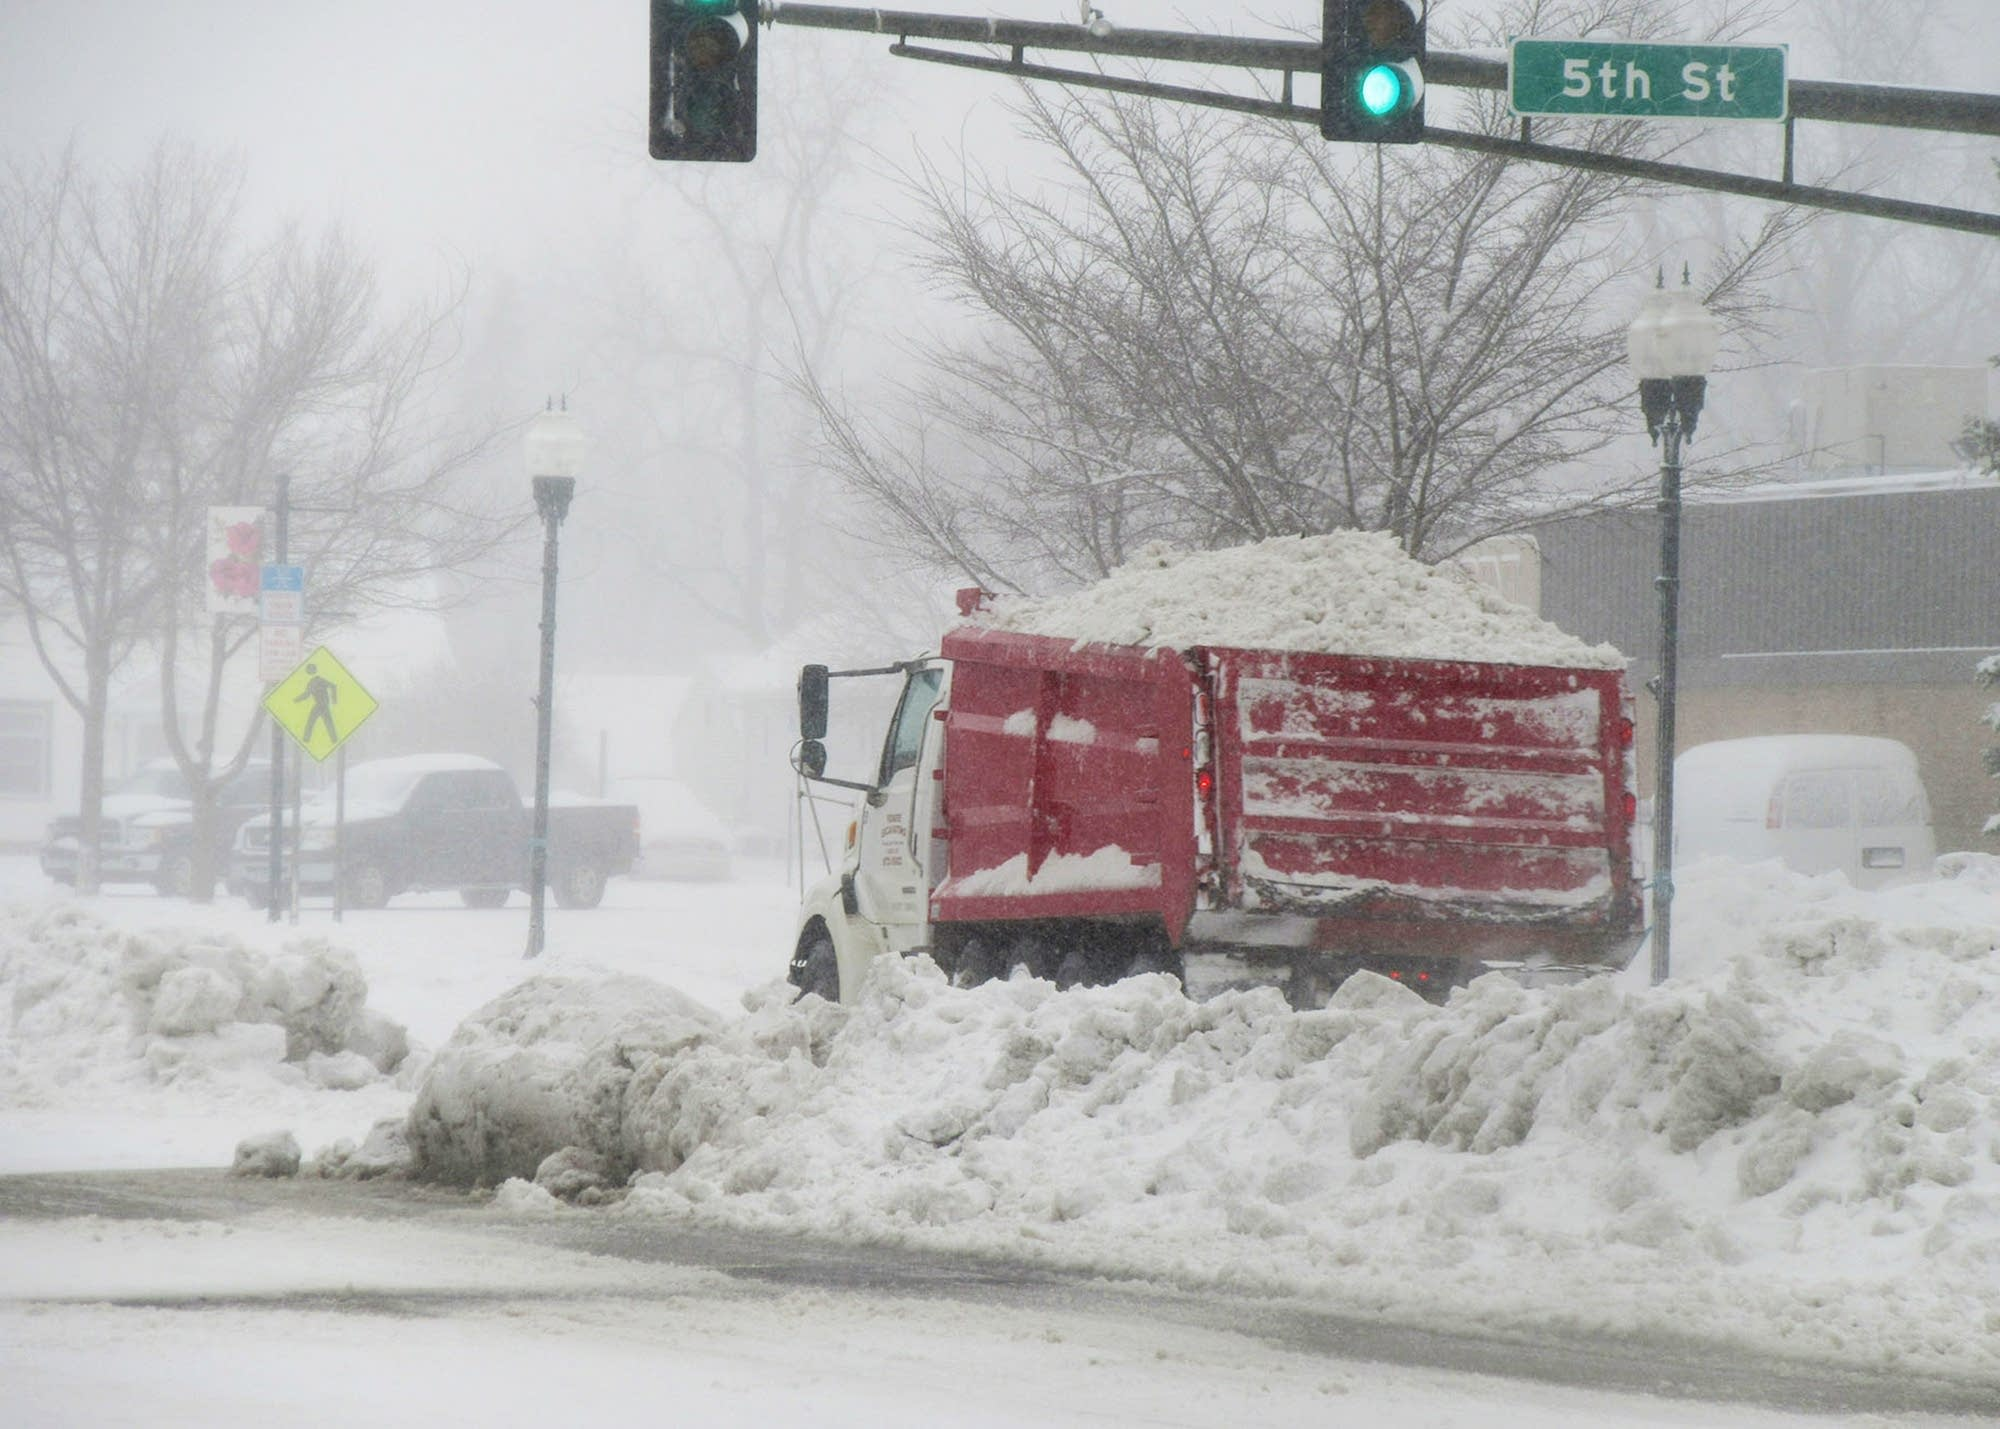 A truck drives in Marshall, Minn., which received about 7 inches of snow.